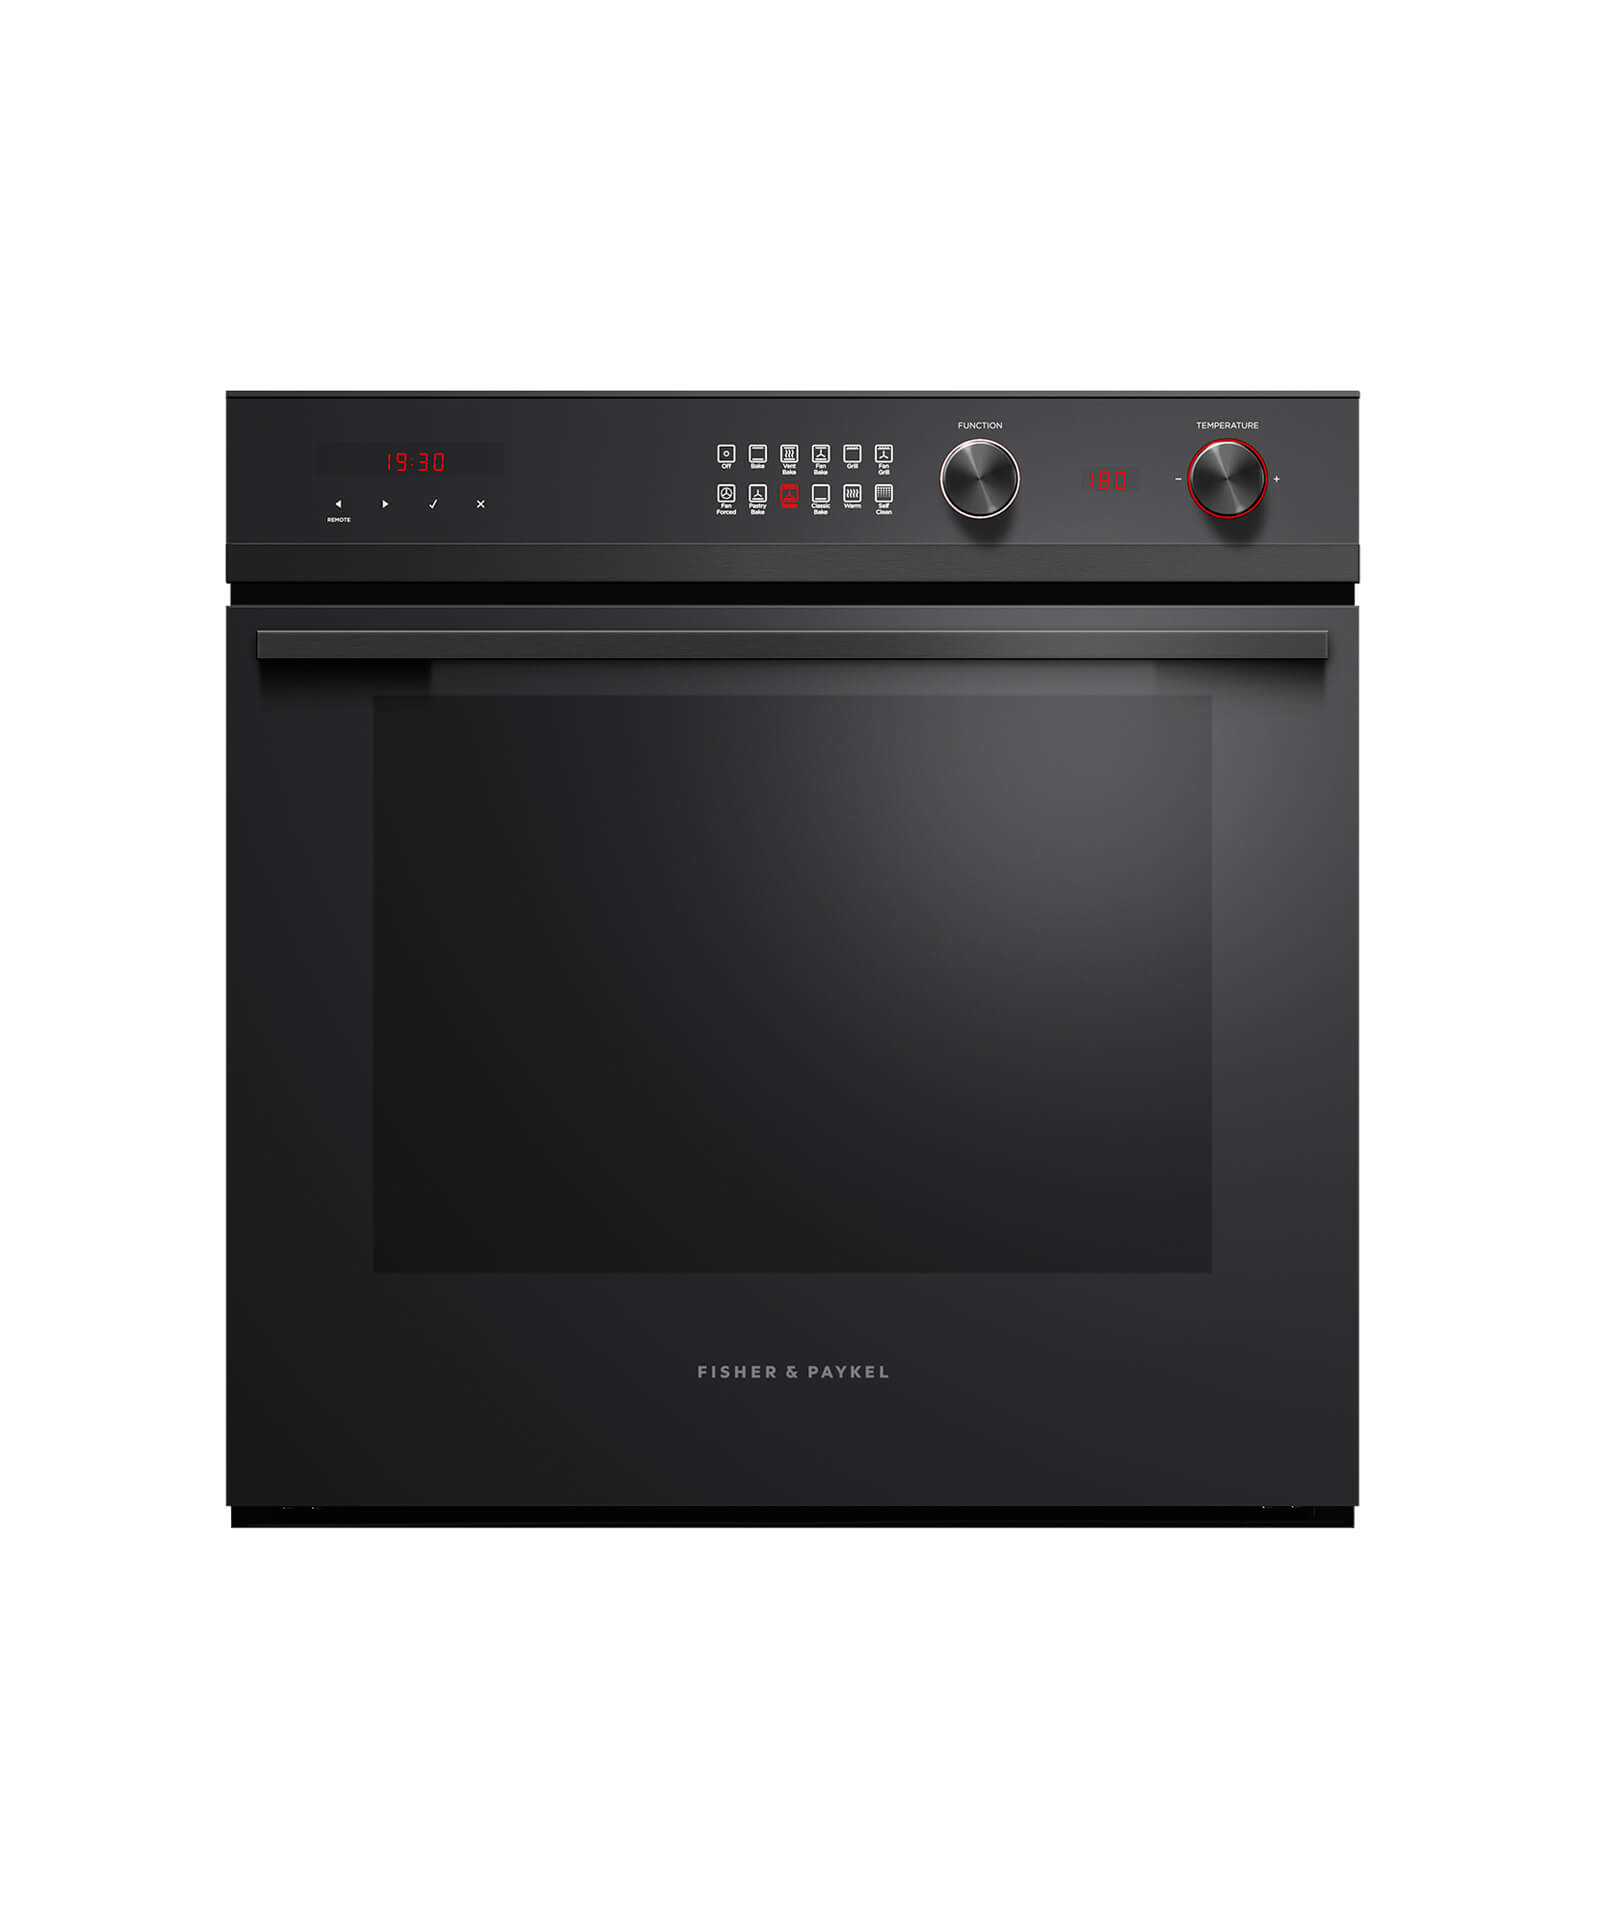 Fisher & Paykel OB60SD11PB1 Oven